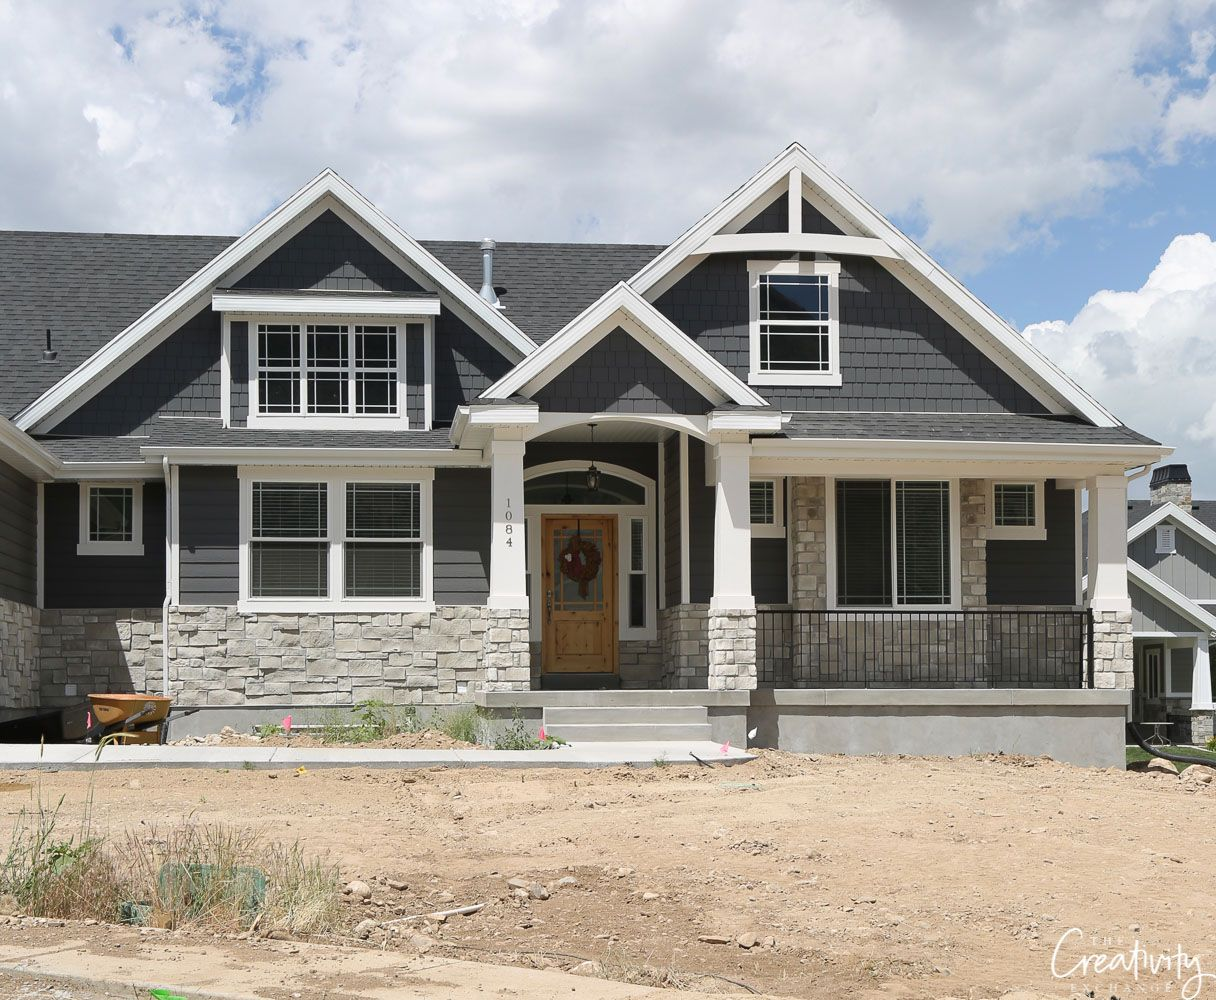 How to Choose the Right Exterior Paint Colors #greyexteriorhousecolors